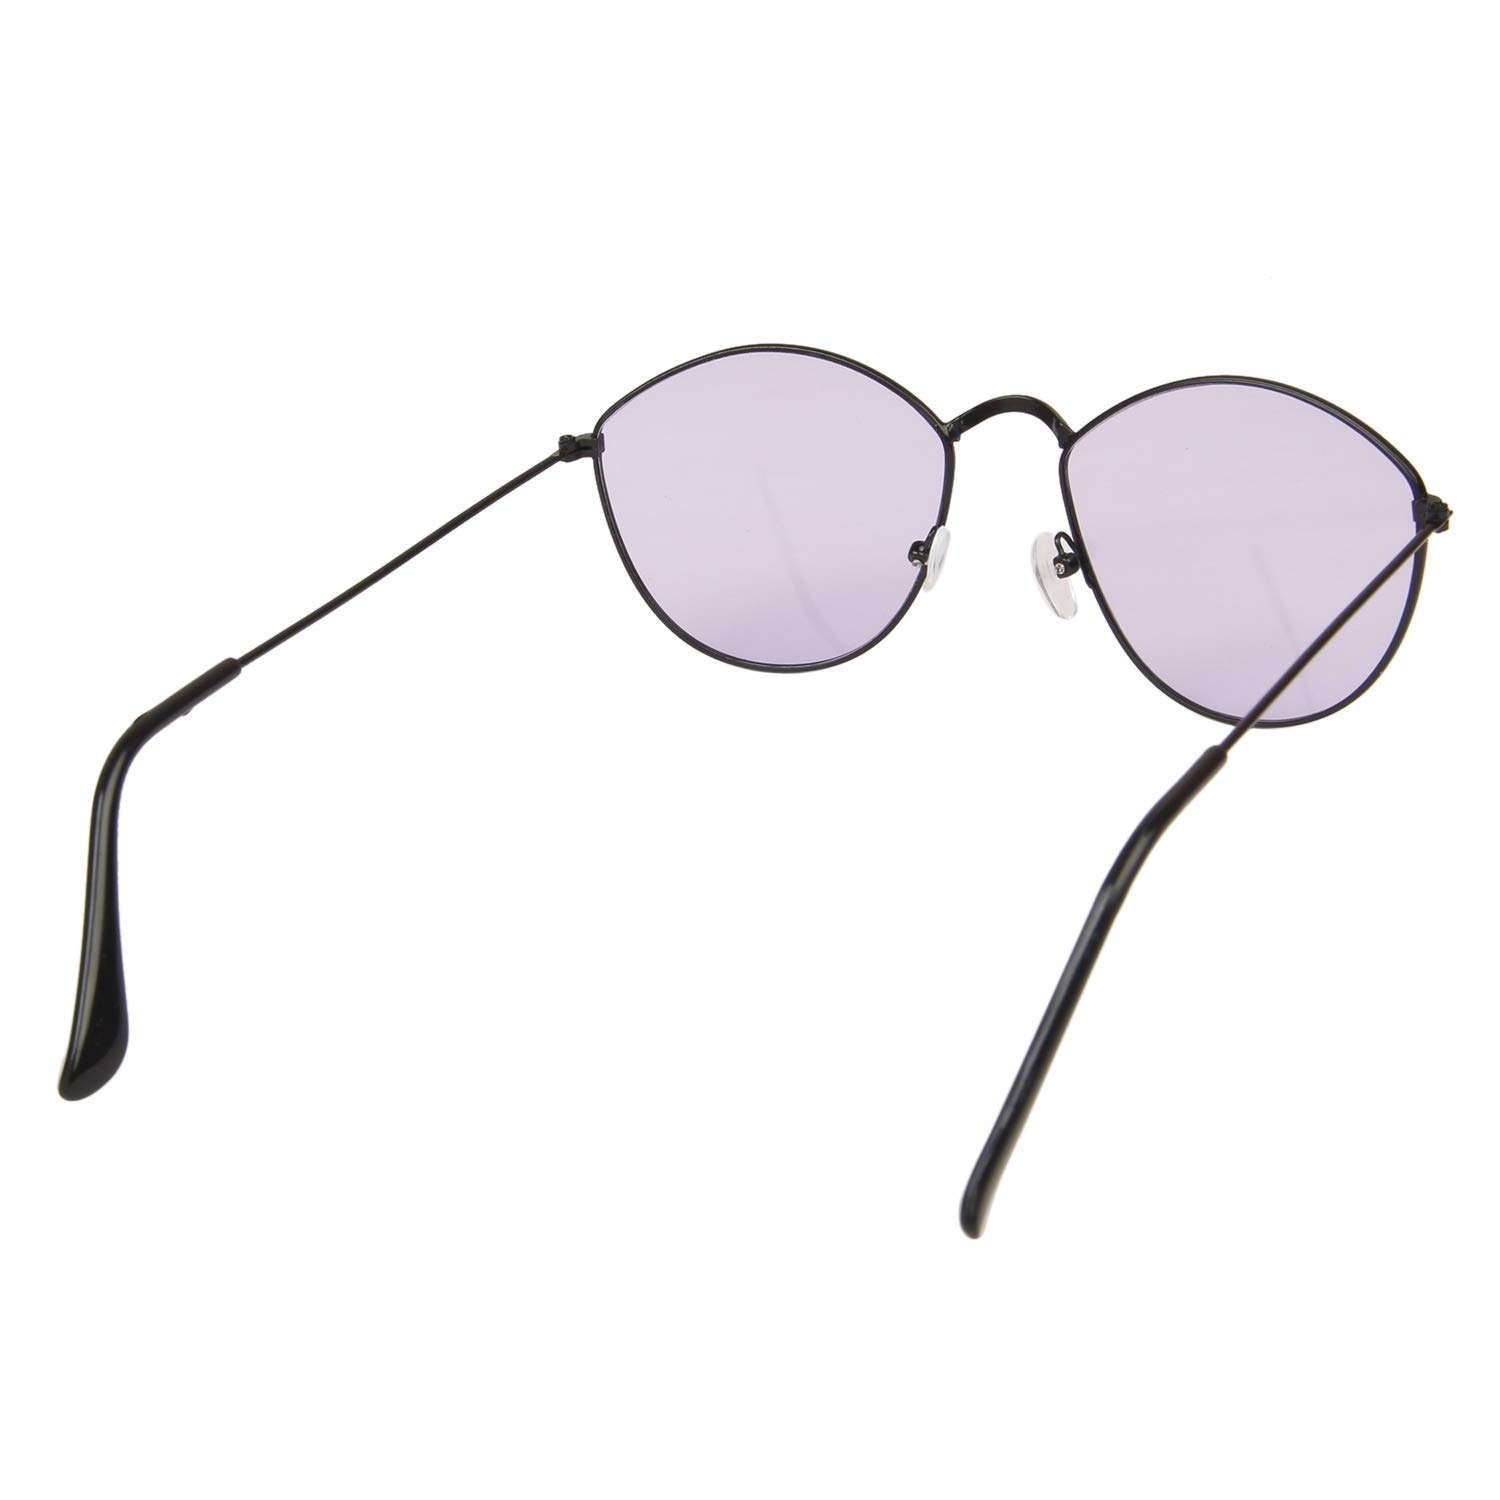 Arzonai Modern New Cateye Sunglasses For Men And Woman